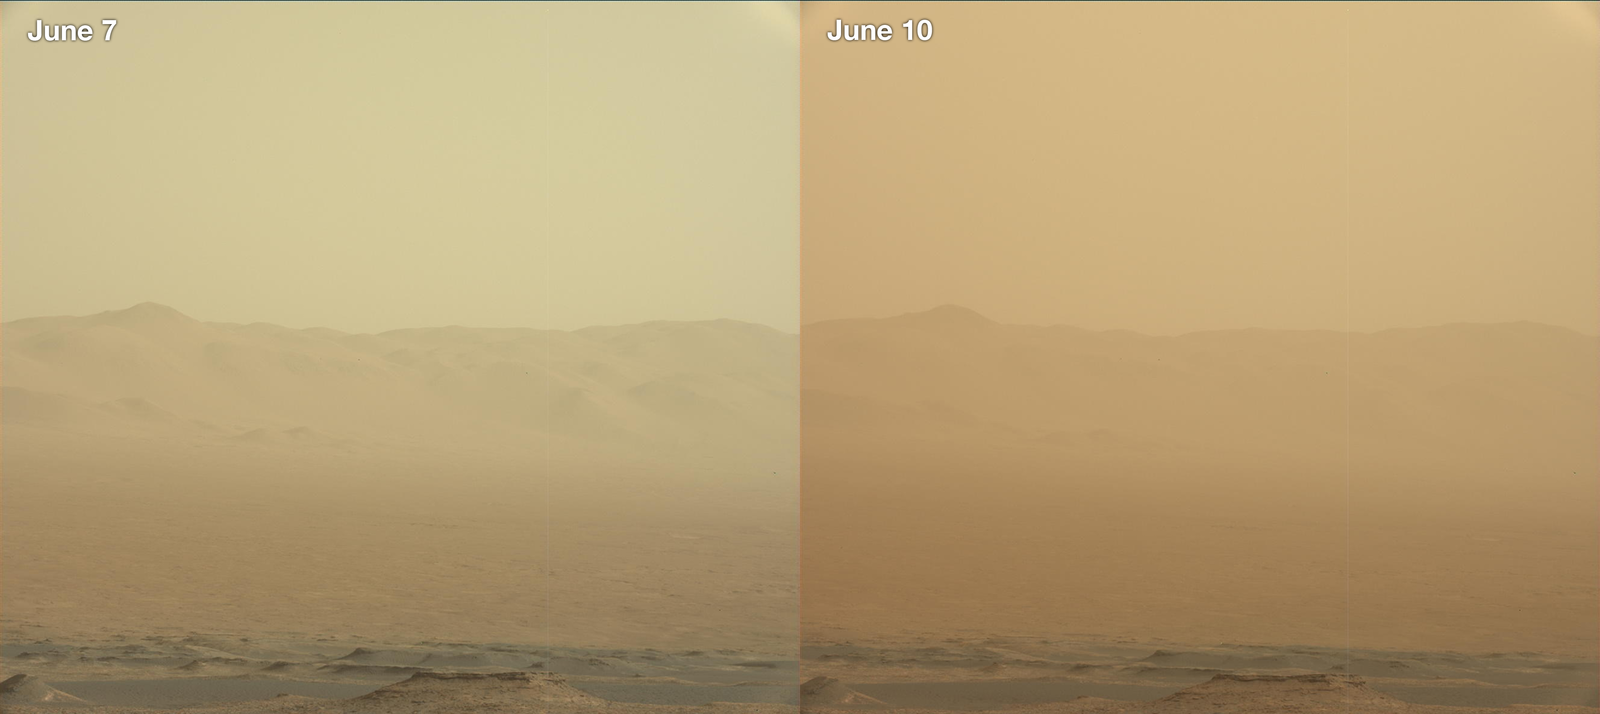 Curiosity's View of the June 2018 Dust Storm